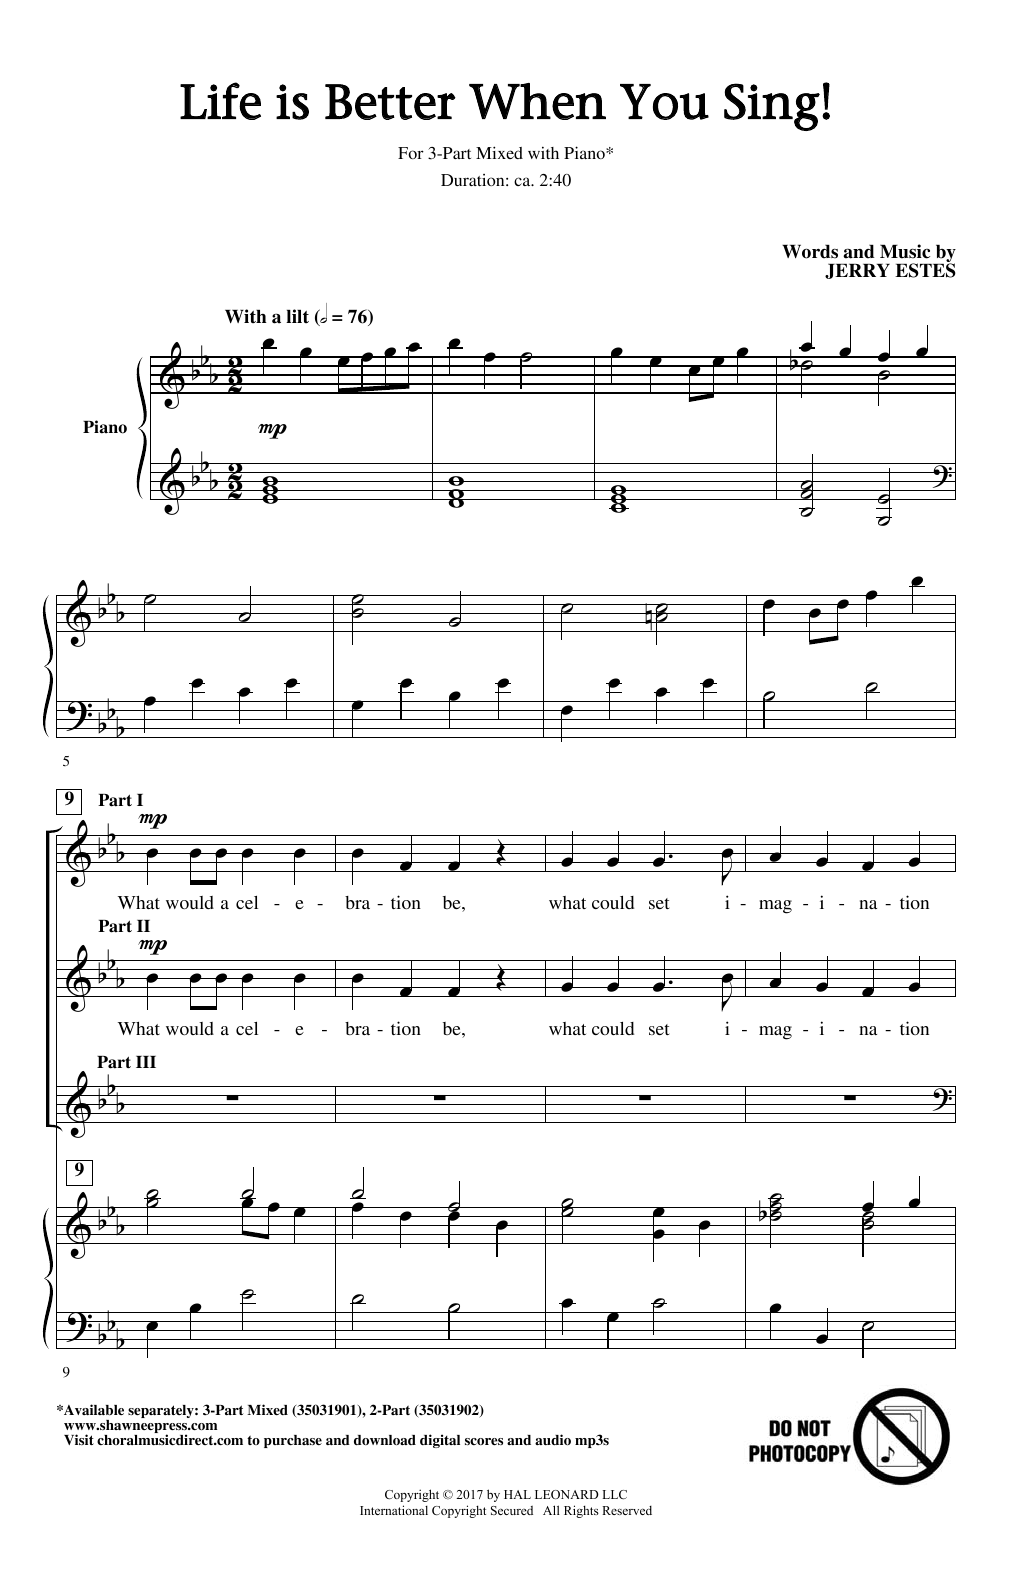 Life Is Better When You Sing! Sheet Music